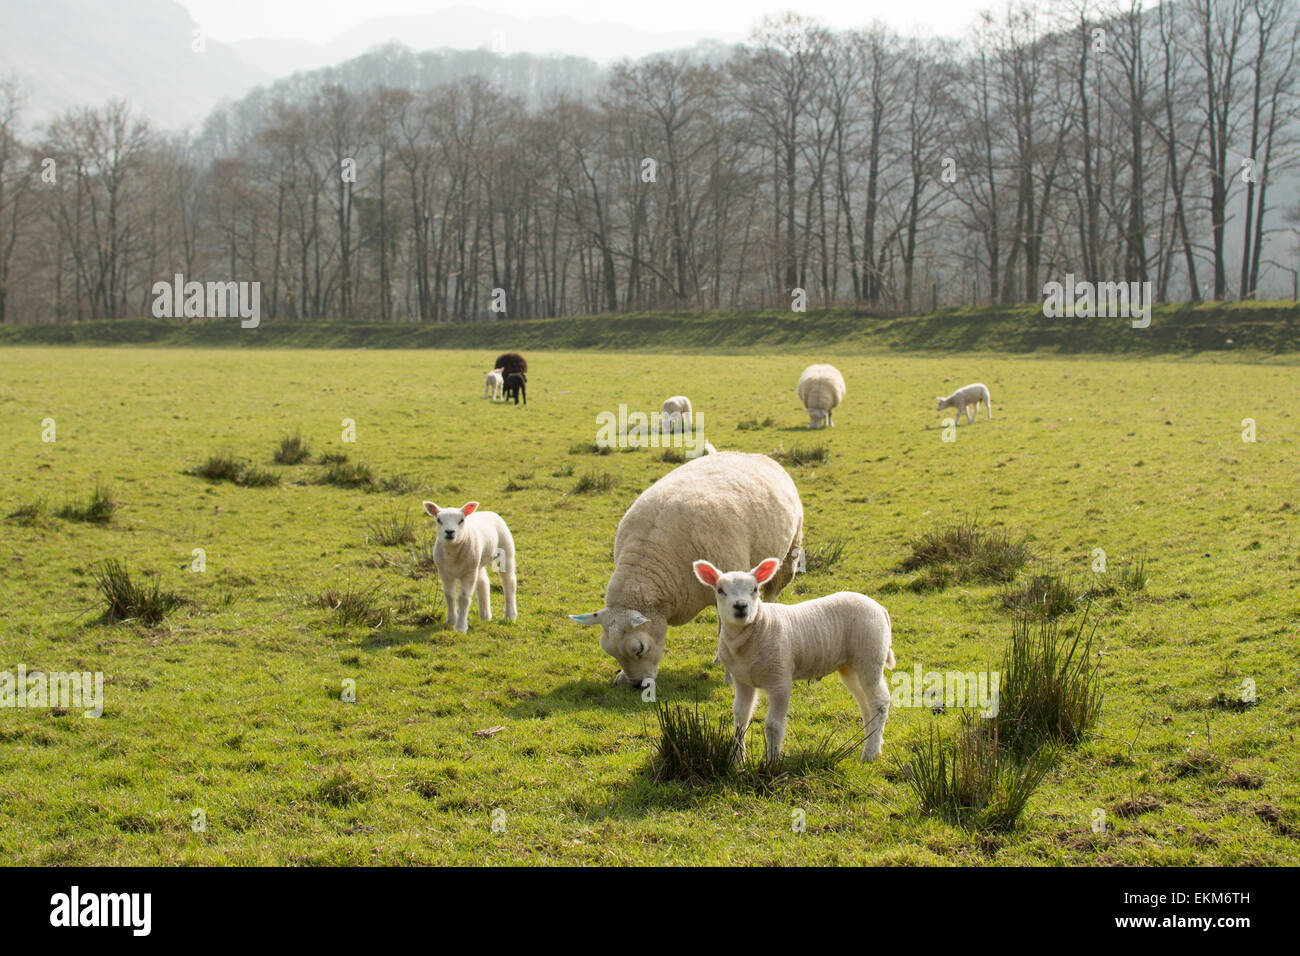 Twin lambs - pink ears backlit by spring sunshine - Lake District, England, UK - Stock Image